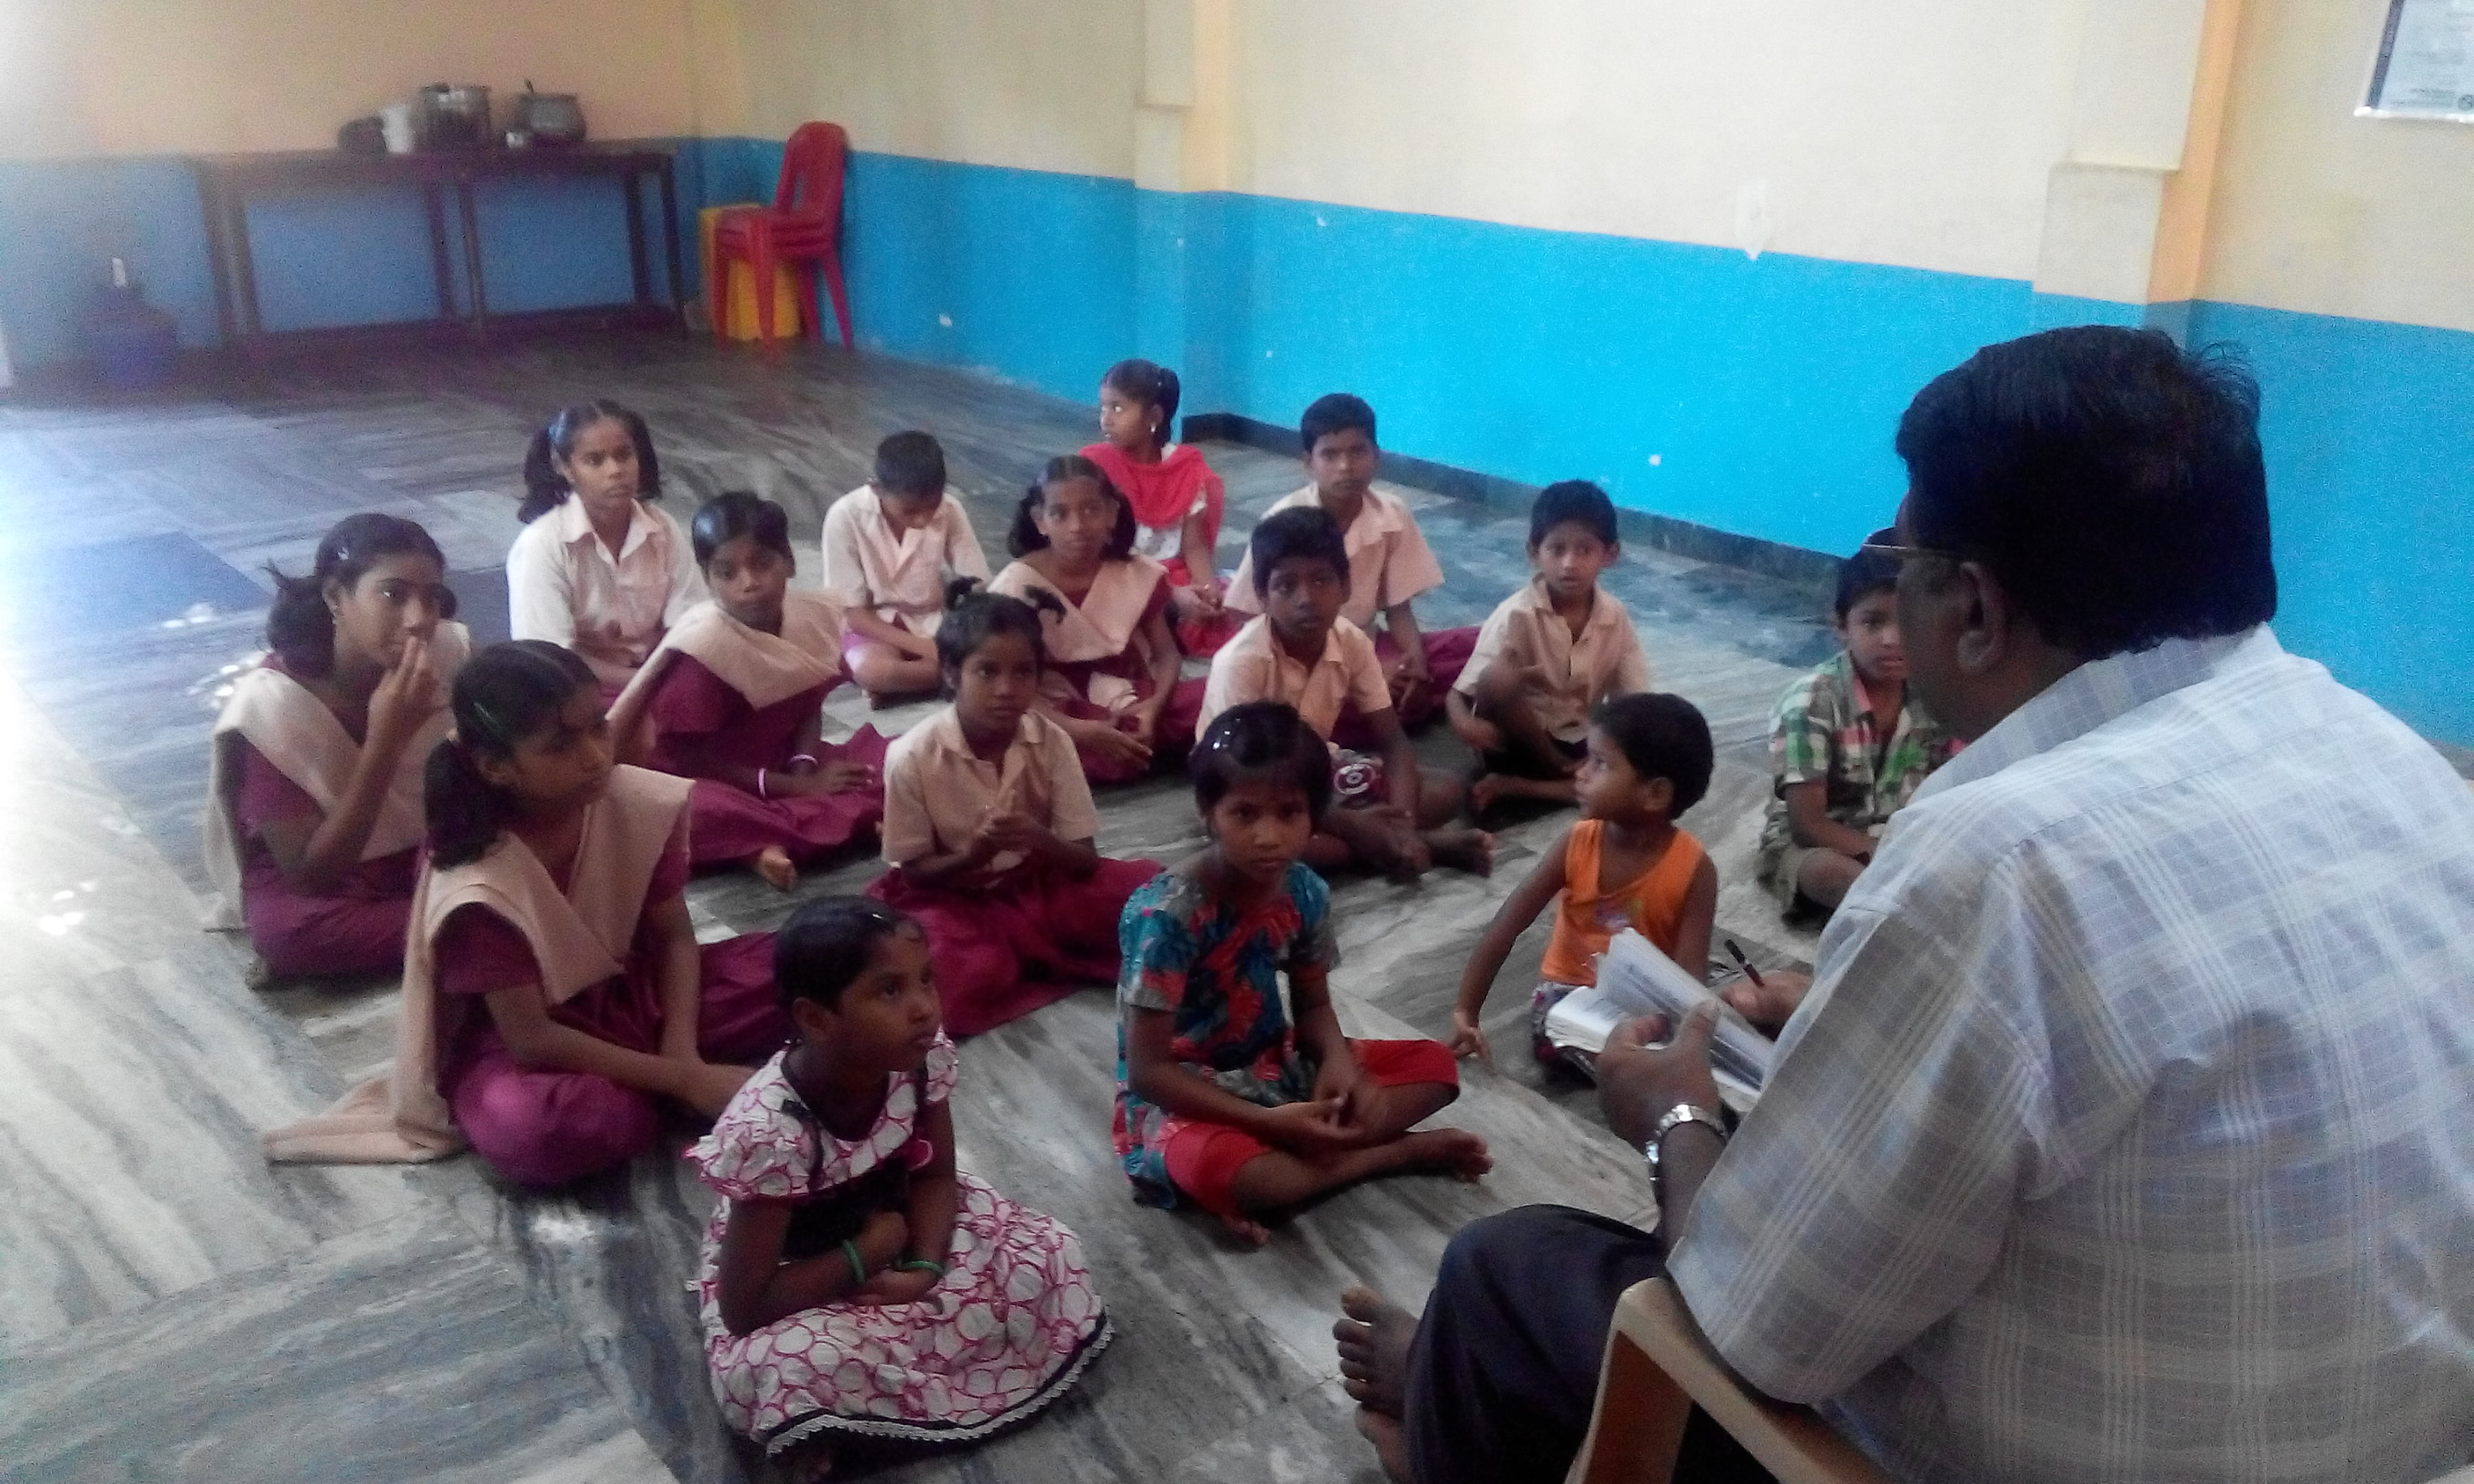 BRIGHT CHILDREN ORPHANAGE  Dear Sir, Madam we request Kindly spend to your busy time few minutes for orphan children, our orphanage running last 21 years,  at permanent Address No: 20/21, Annai Theresa Nagar, Kolathur Main Road, Villivakkam, Chennai-600049 (Near: Thai Moogambigai Koil)   Our Safe India orphanage has been working for strengthening the deserted children of the society. We have been working for these to children since the past 21 years. We provide food, clothes, and quality education to these underprivileged children. Since the last decade, we have been receiving donation from many good hearted people. But, during the current economic crisis, we have been facing financial problems to run our orphanage. We are seeking donations from every possible source we can. We have dedicated Orphanage Building on 10.3.2018 shelter to Orphan children through your valuable support and donations, Safe India Request to   your good self please come to orphanage and visit to orphan children. Our children online bank details: http://needyouraid.com/campaigns/safe-india